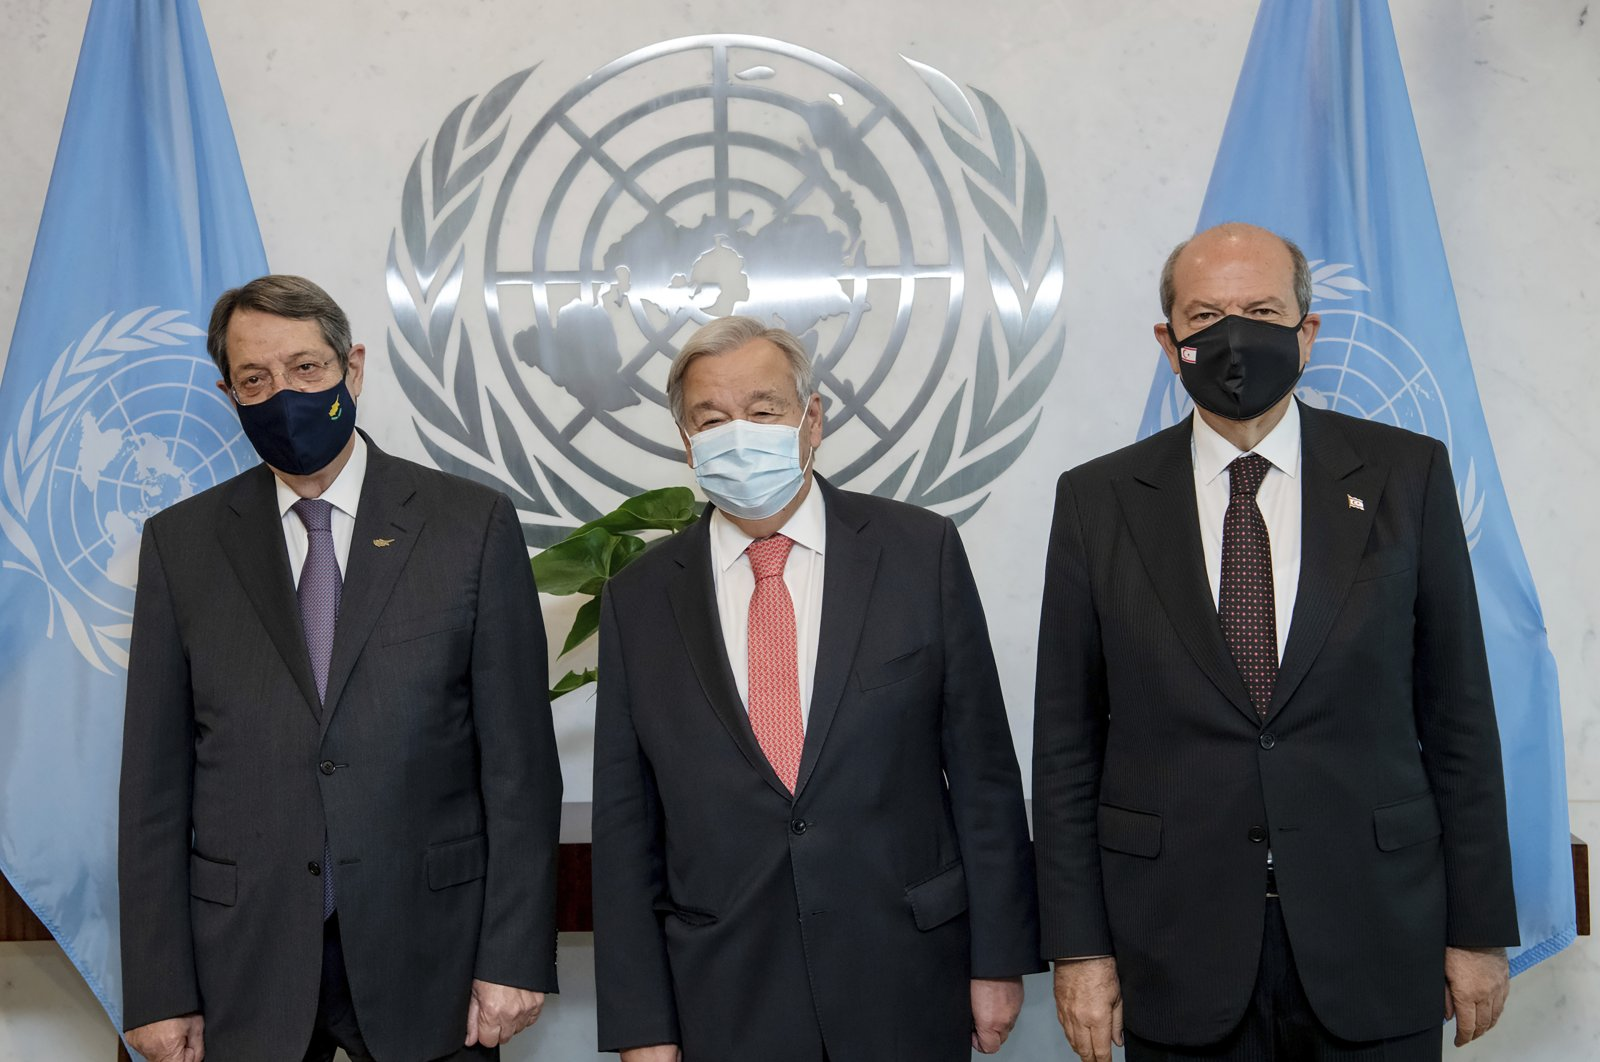 In this photo provided by the United Nations, Secretary-General Antonio Guterres (C) meets Greek Cypriot administration leader Nicos Anastasiades (L) and TRNC President Ersin Tatar, at U.N. headquarters, Monday, Sept. 27, 2021. (Mark Garten/U.N. via AP)